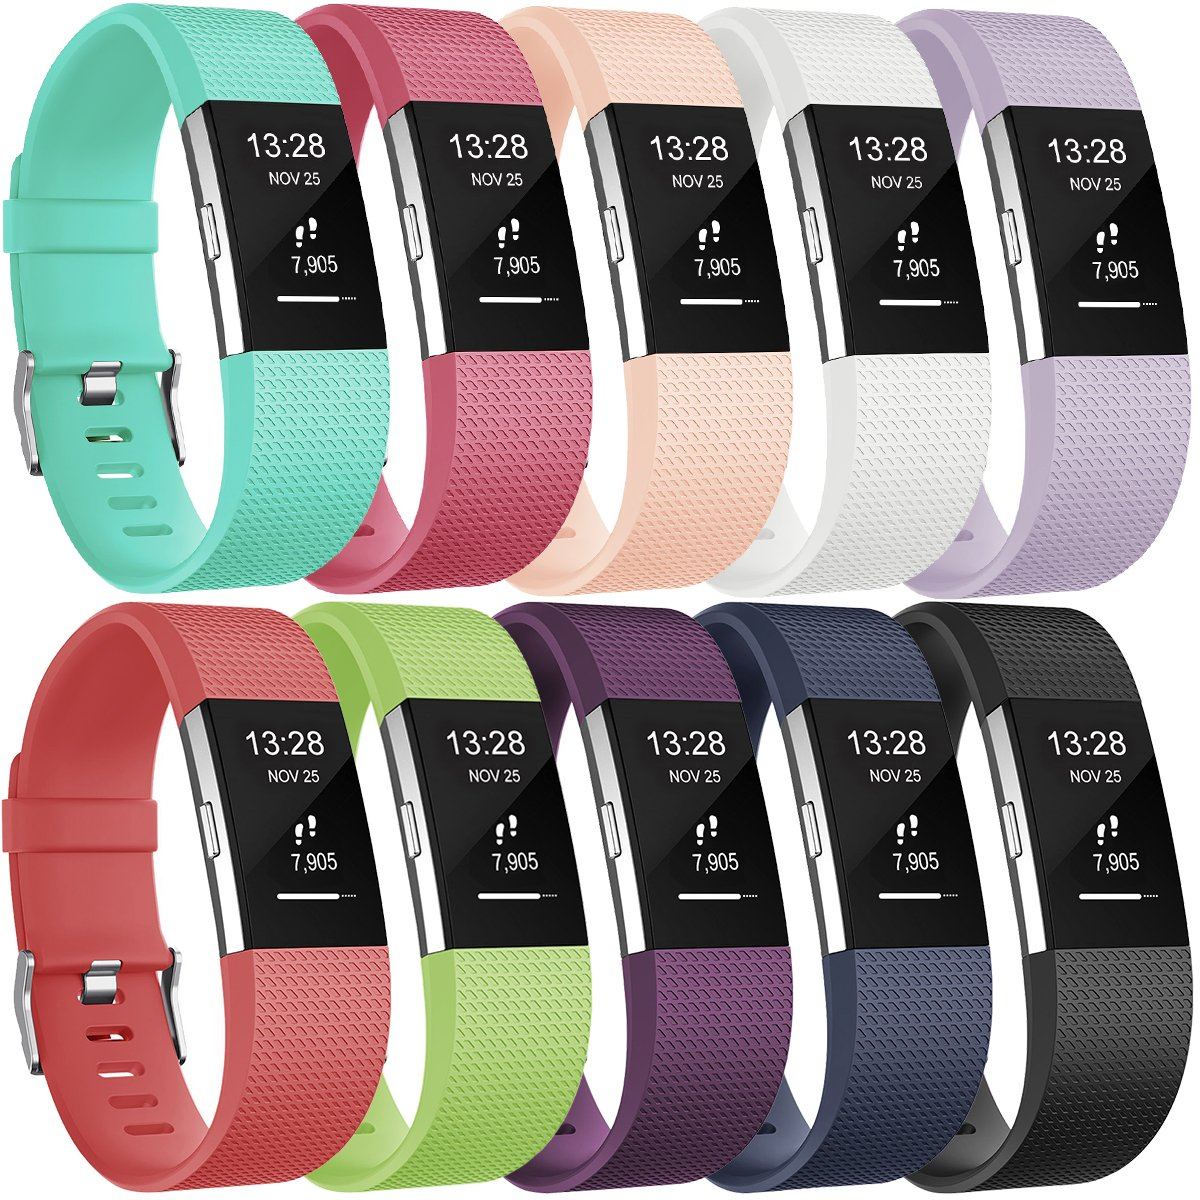 Gogoings Correa para Fitbit Charge 2 Pulsera Ajustable Correa de Reemplazo Deportivo Compatible con Fitbit Charge2 para Mujeres Hombres (Sin Reloj) product image